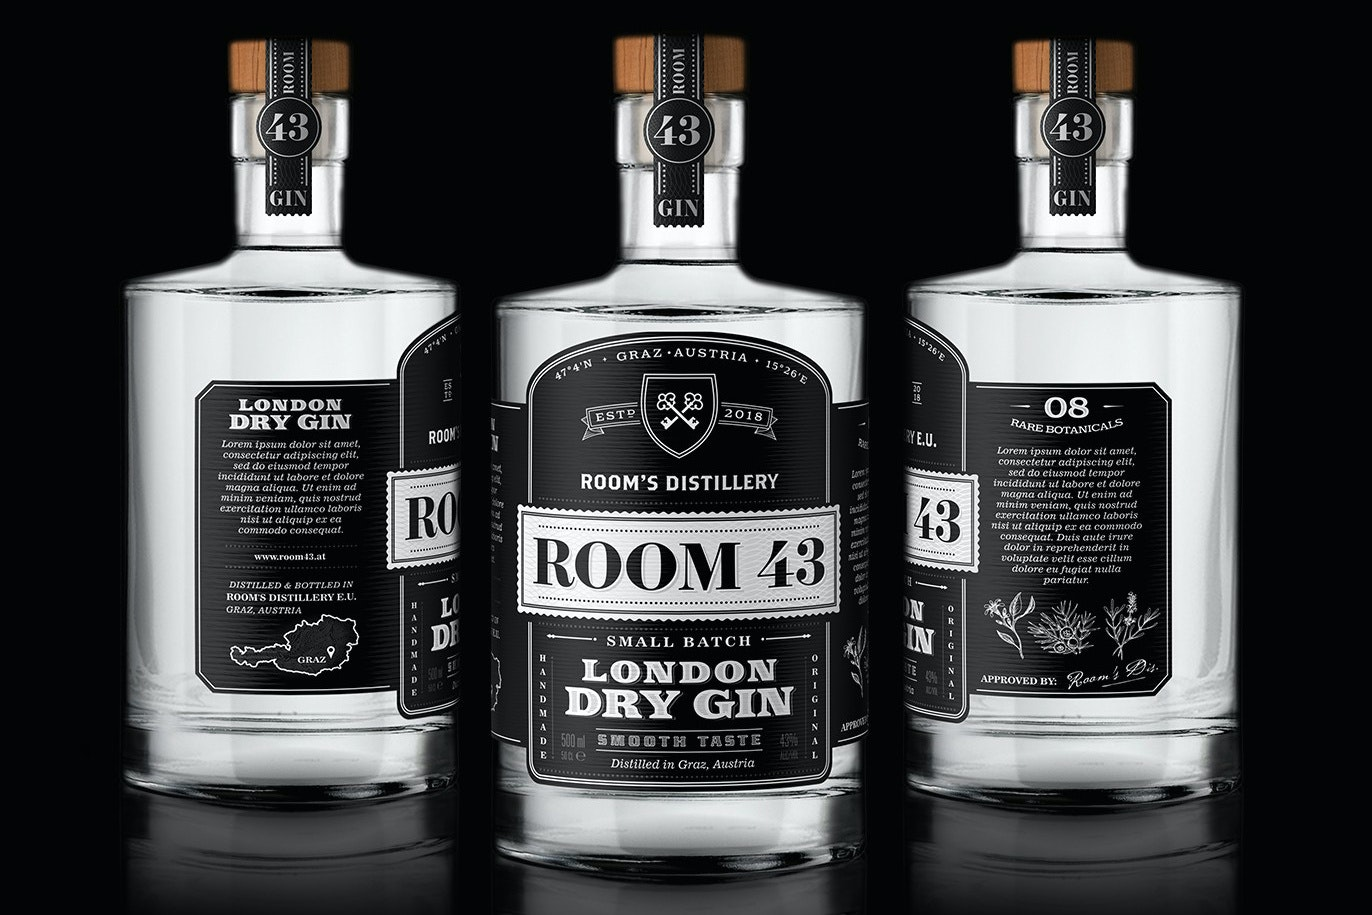 Room 43 gin vintage design